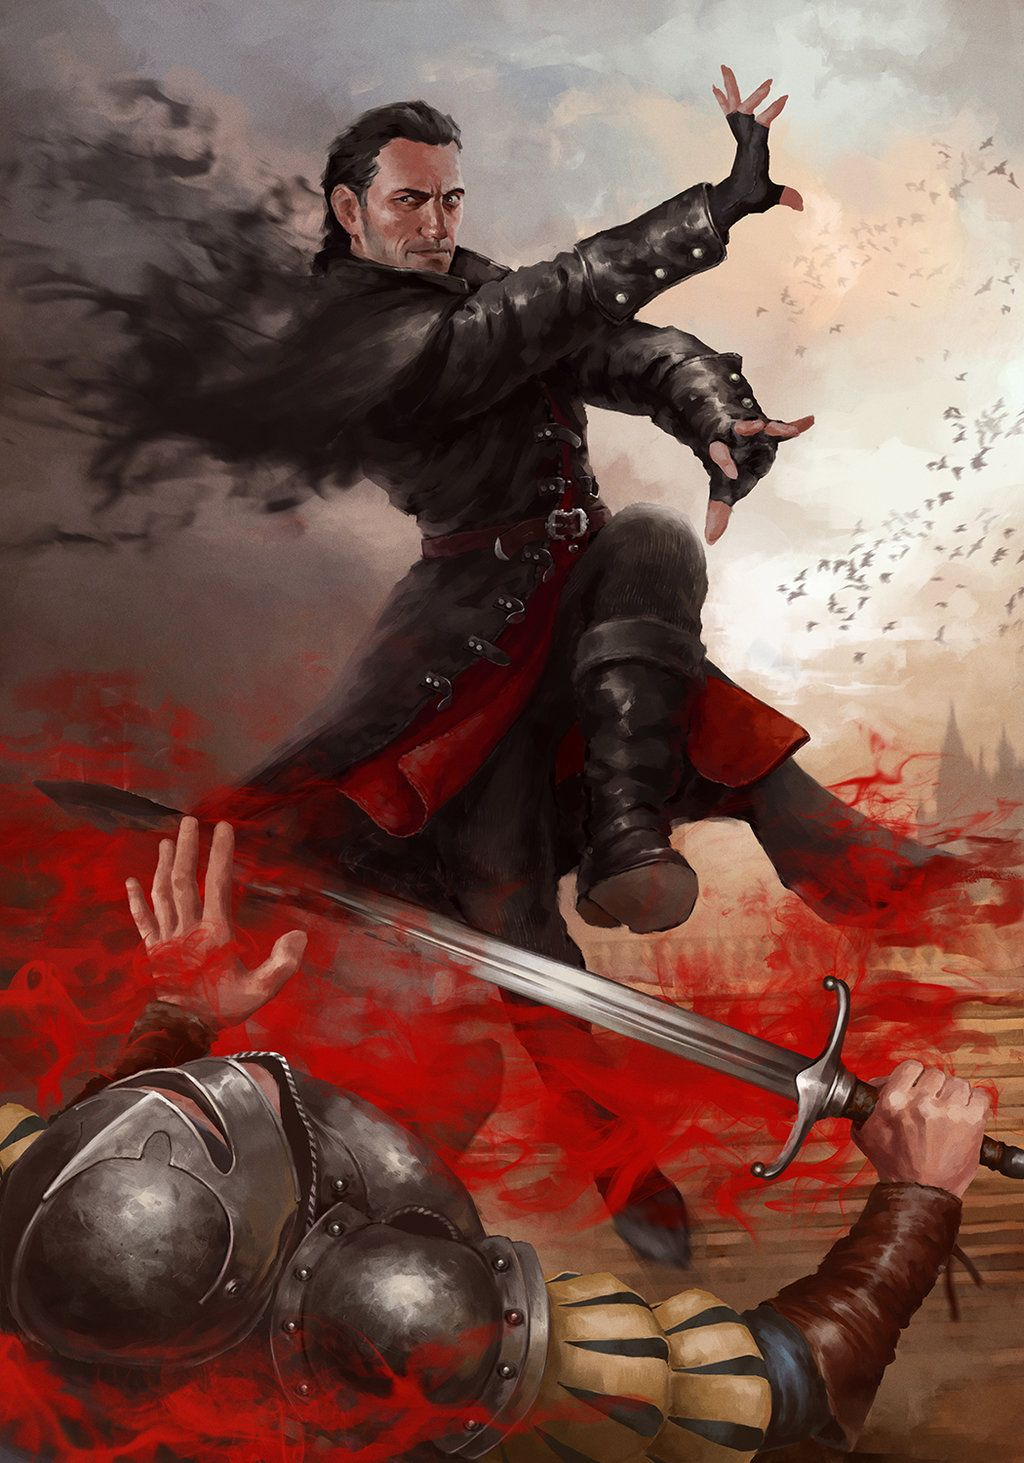 Dettlaff Van Der Eretein By Lilia Anisimova Witcher Art Fantasy Characters Concept Art Characters